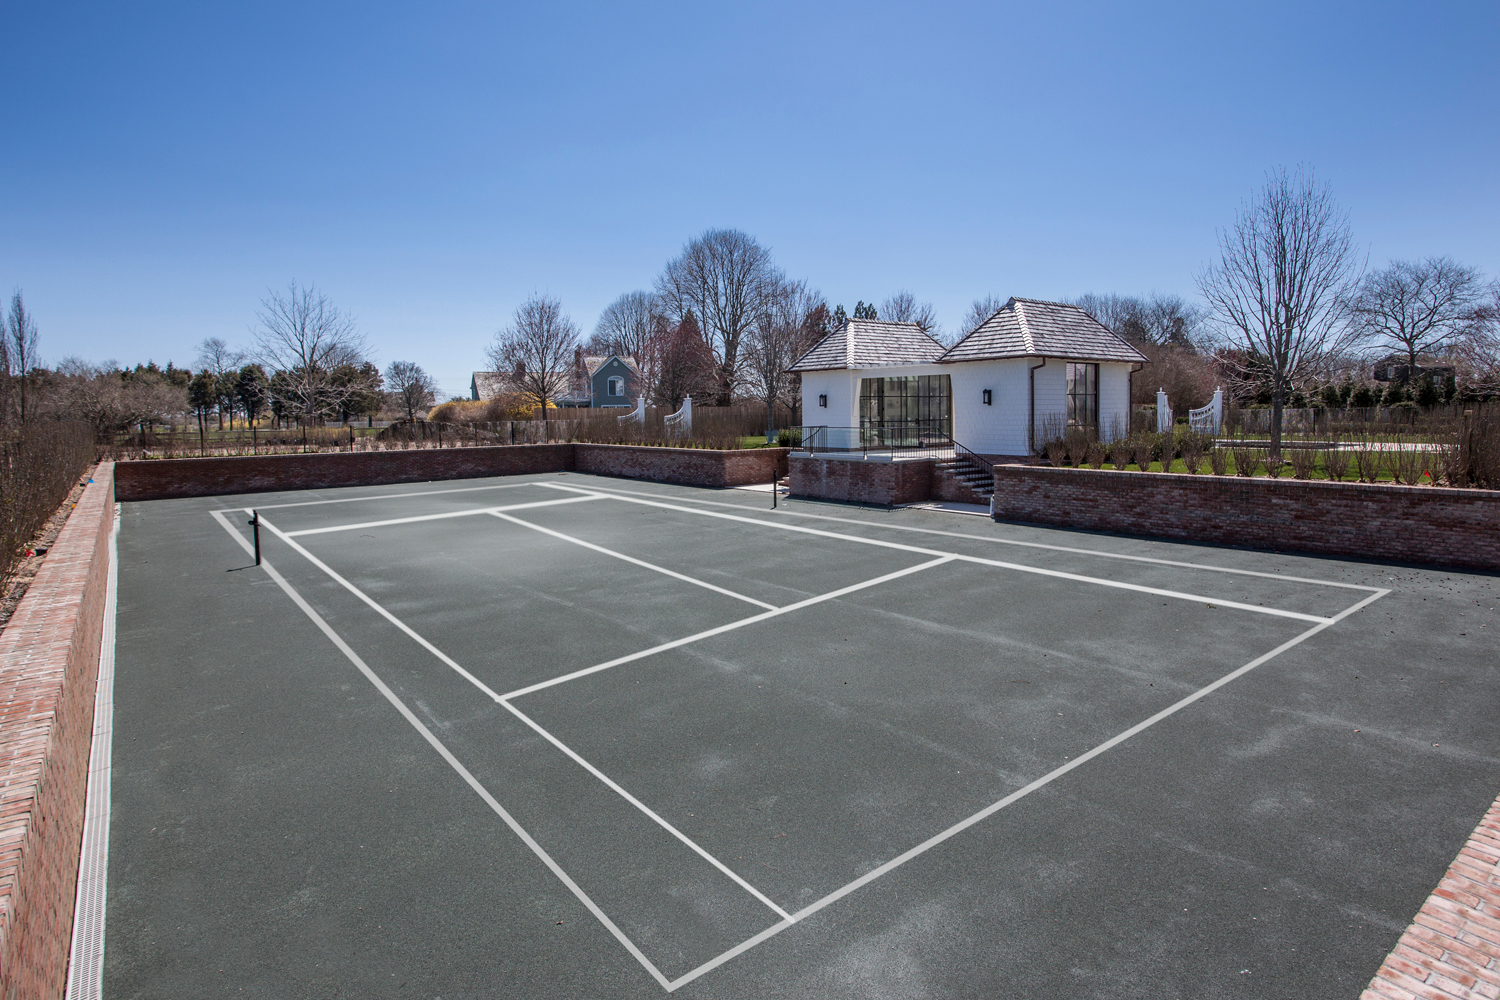 <span>sunken tennis court</span><span  class='incontracts'>IN CONTRACT </span>